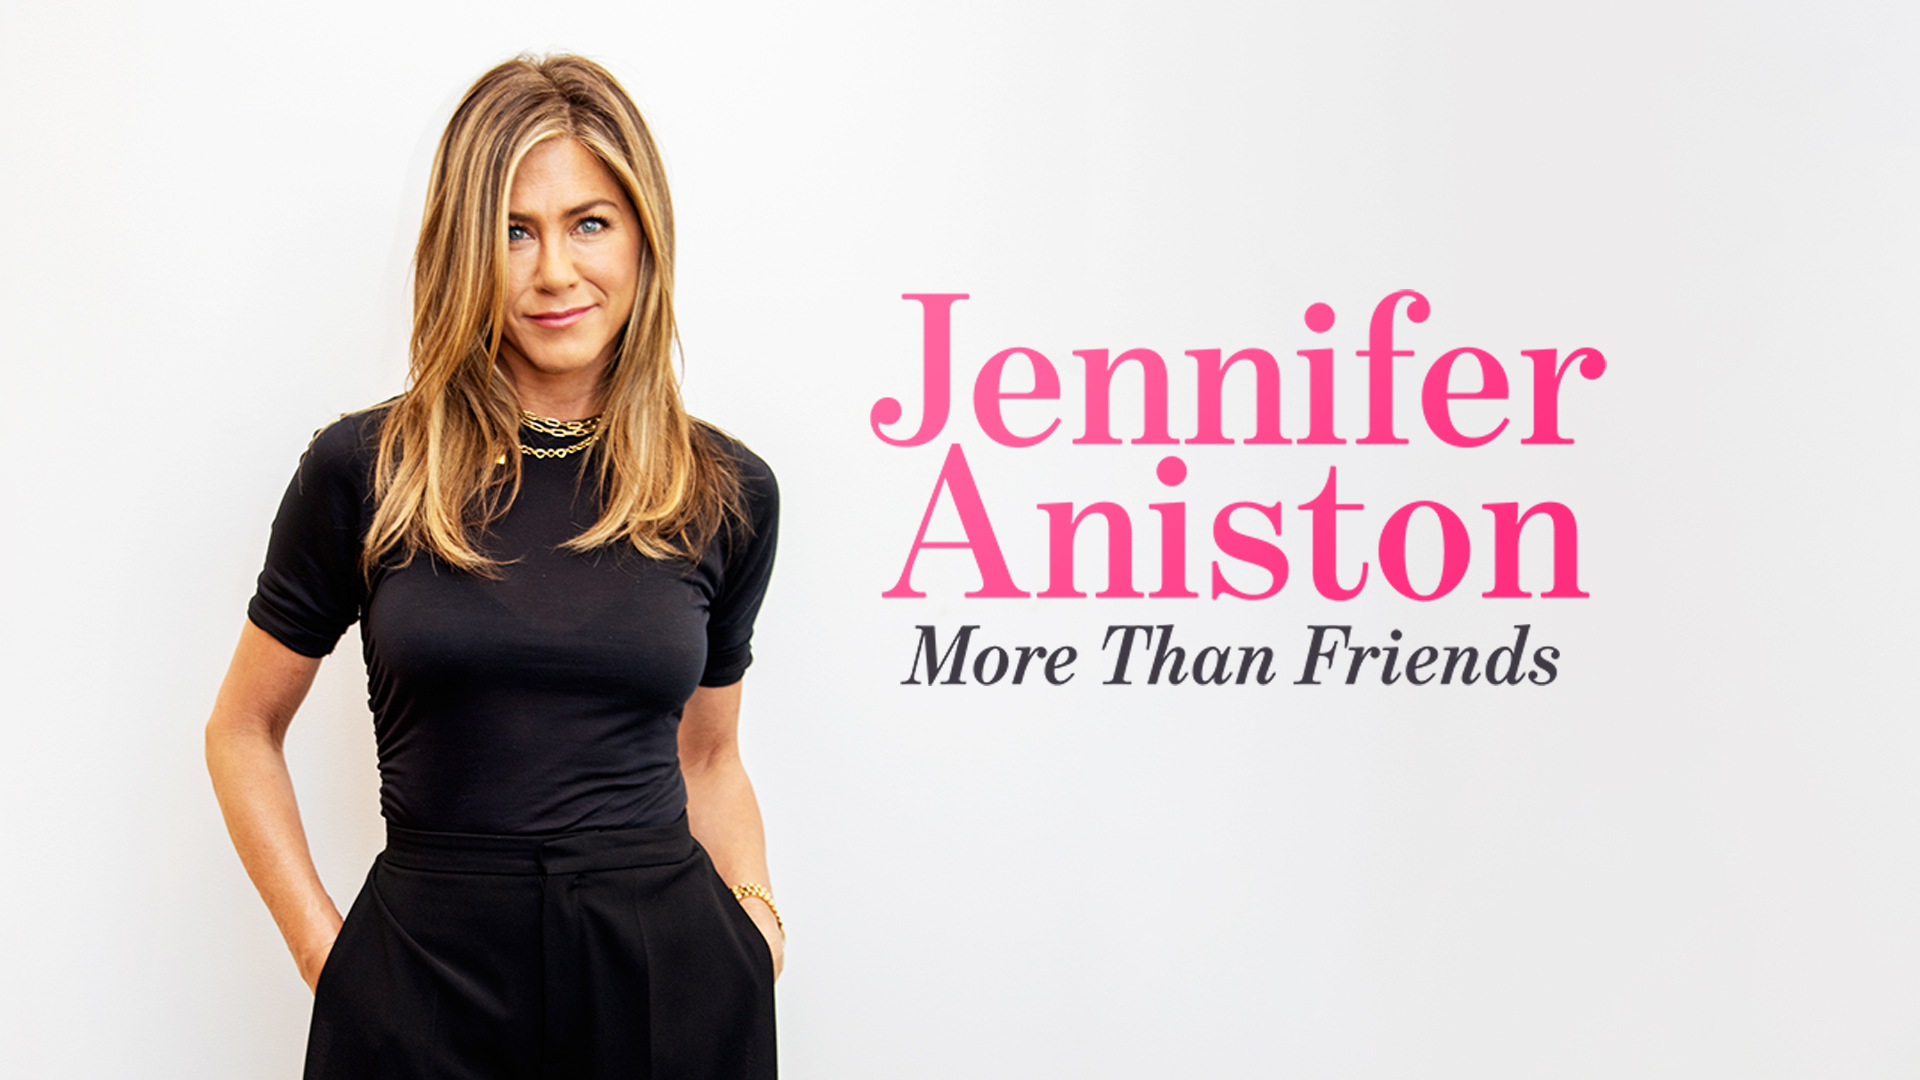 Jennifer Aniston - More Than Friends now available